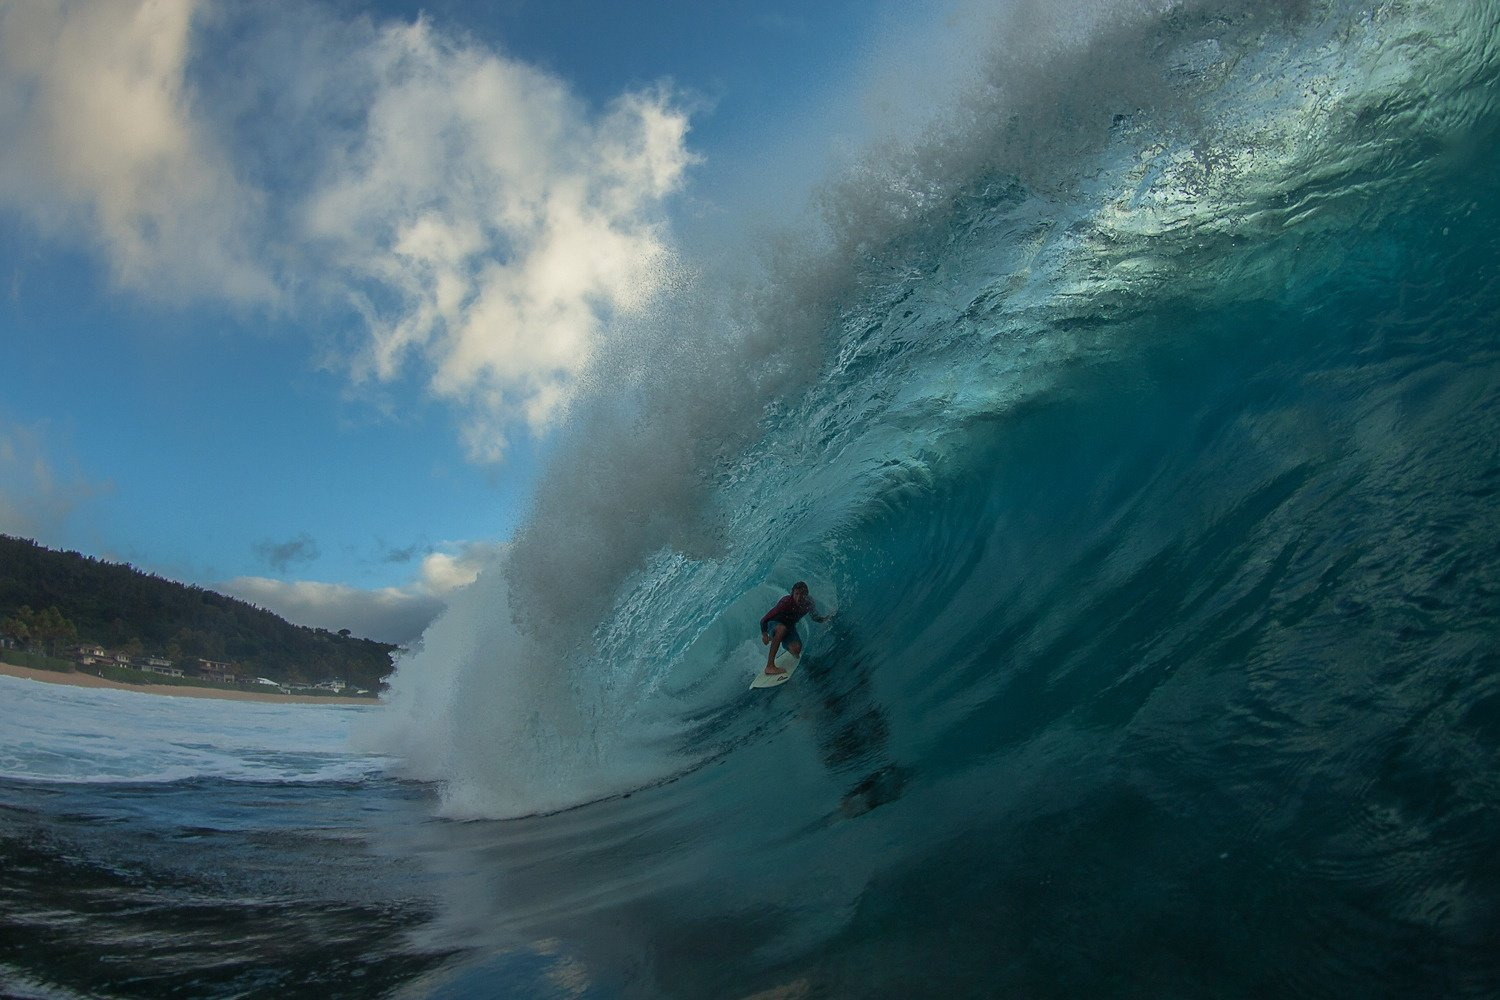 jahkite's photo of Pipeline & Backdoor